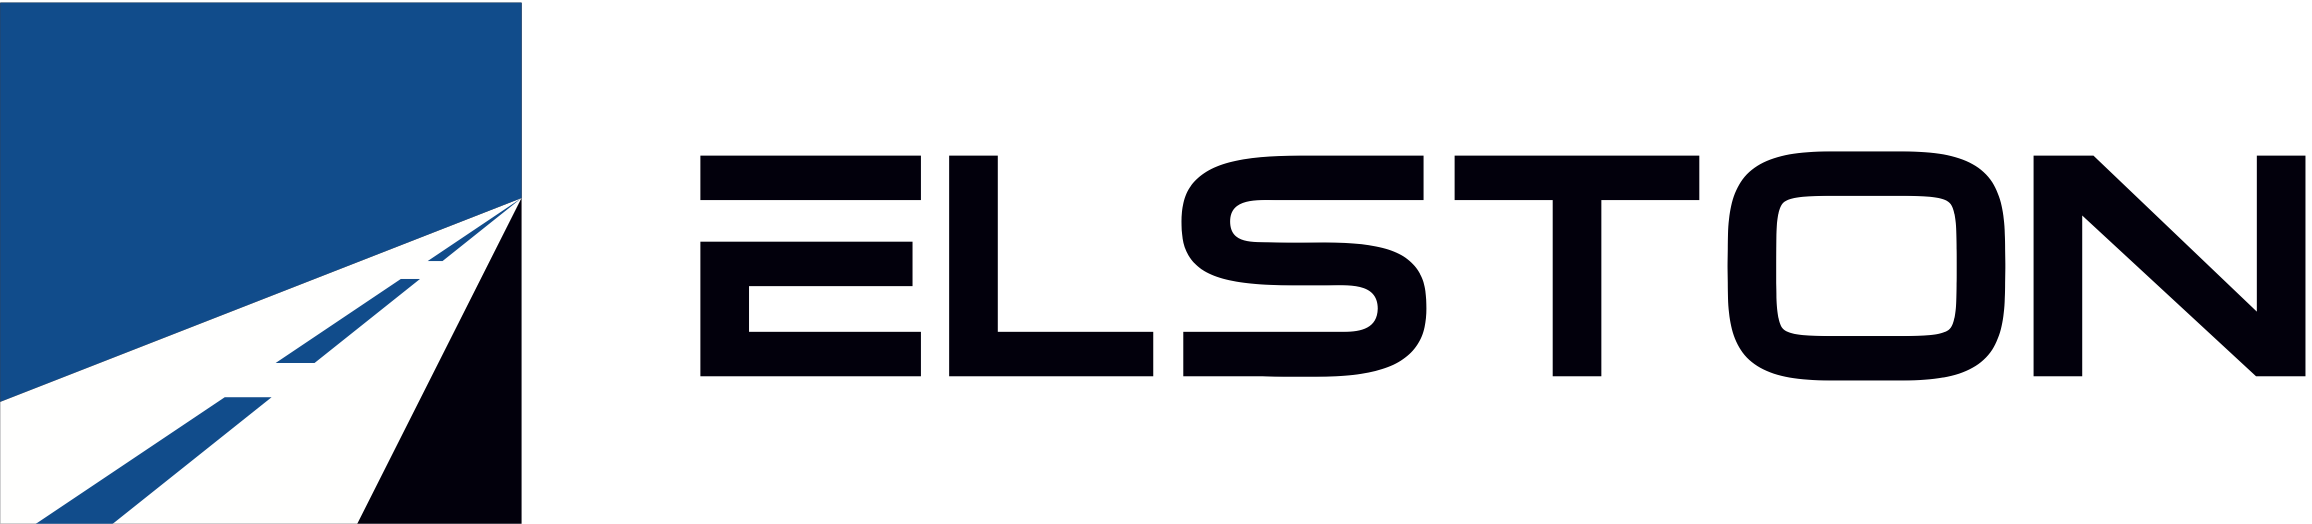 Elston Logo.png